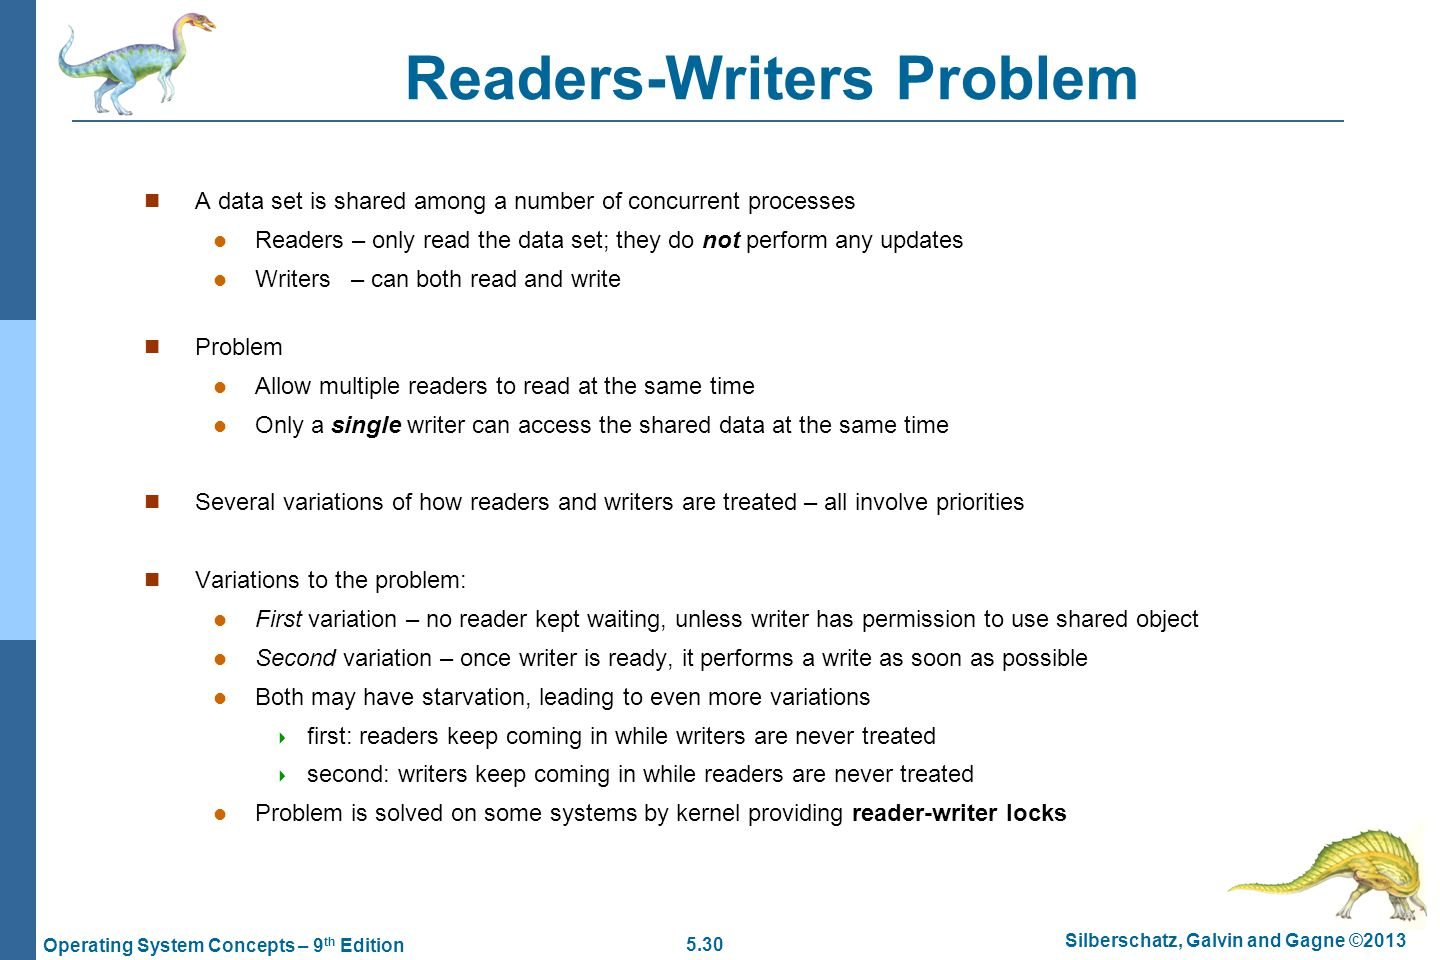 5.30 Silberschatz, Galvin and Gagne ©2013 Operating System Concepts – 9 th Edition Readers-Writers Problem A data set is shared among a number of concurrent processes Readers – only read the data set; they do not perform any updates Writers – can both read and write Problem Allow multiple readers to read at the same time Only a single writer can access the shared data at the same time Several variations of how readers and writers are treated – all involve priorities Variations to the problem: First variation – no reader kept waiting, unless writer has permission to use shared object Second variation – once writer is ready, it performs a write as soon as possible Both may have starvation, leading to even more variations  first: readers keep coming in while writers are never treated  second: writers keep coming in while readers are never treated Problem is solved on some systems by kernel providing reader-writer locks